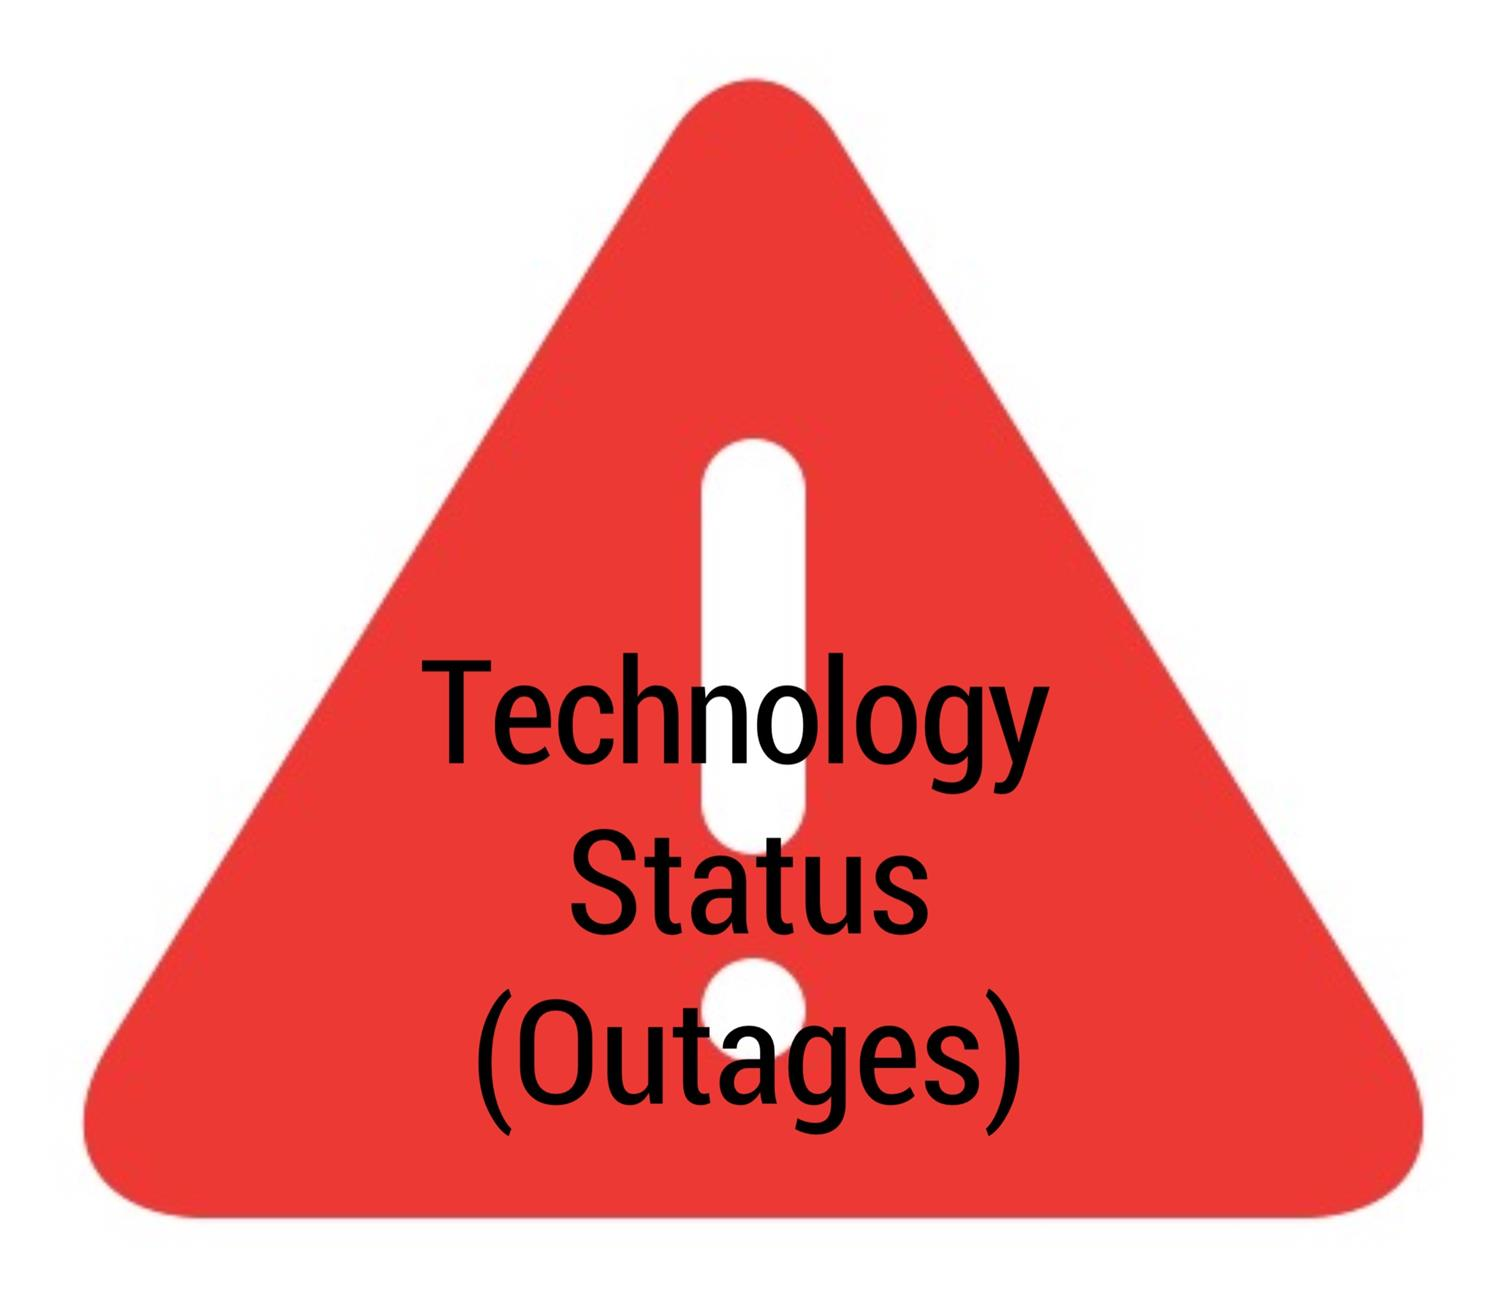 Technology Status (Outages)